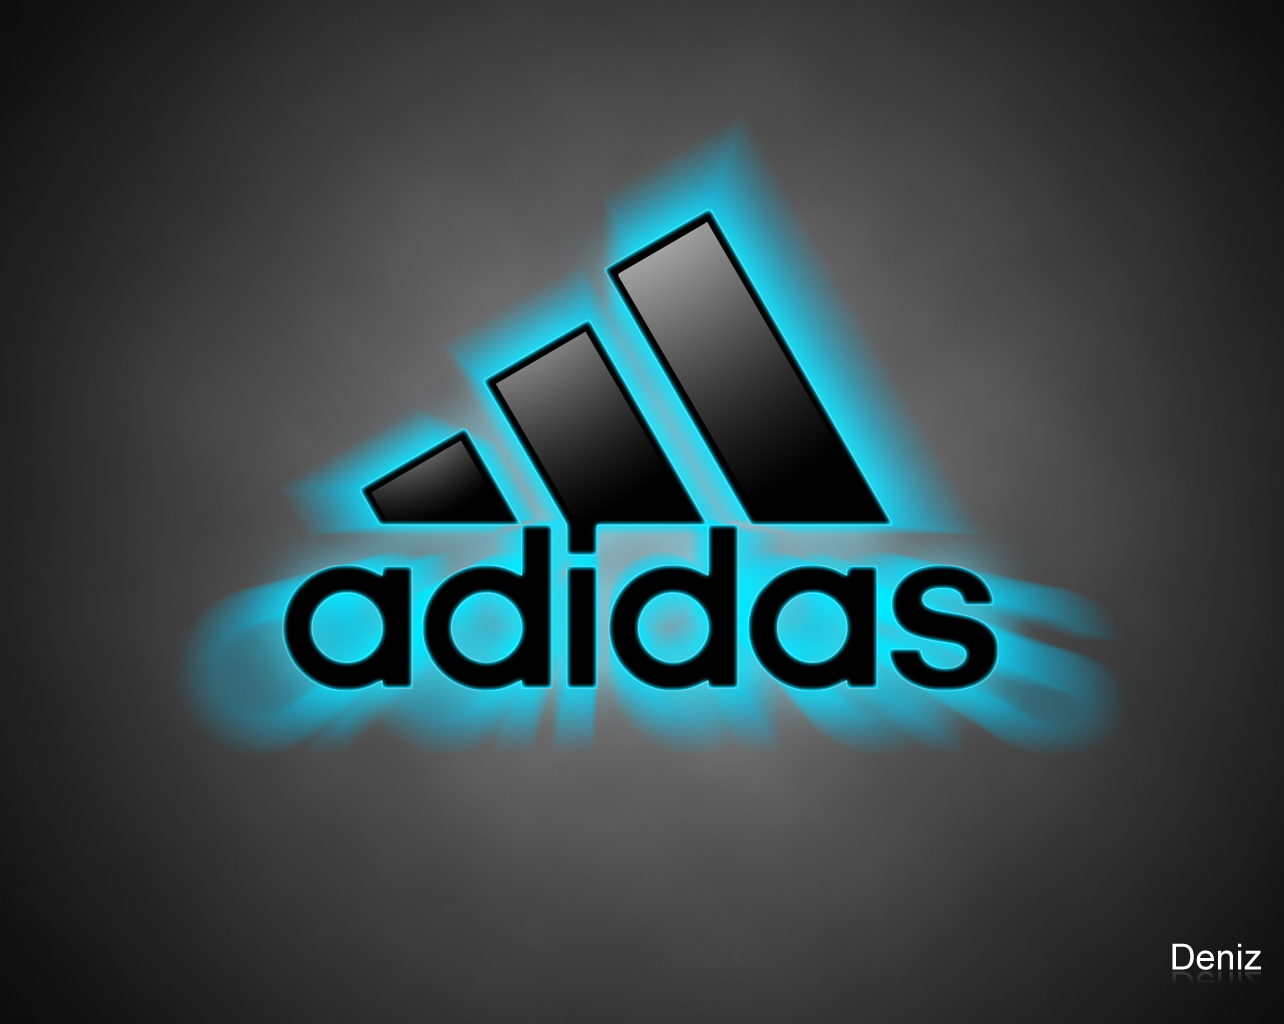 Adidas Football Wallpaper Hd 3d   Football Wallpaper HD Football 1284x1024